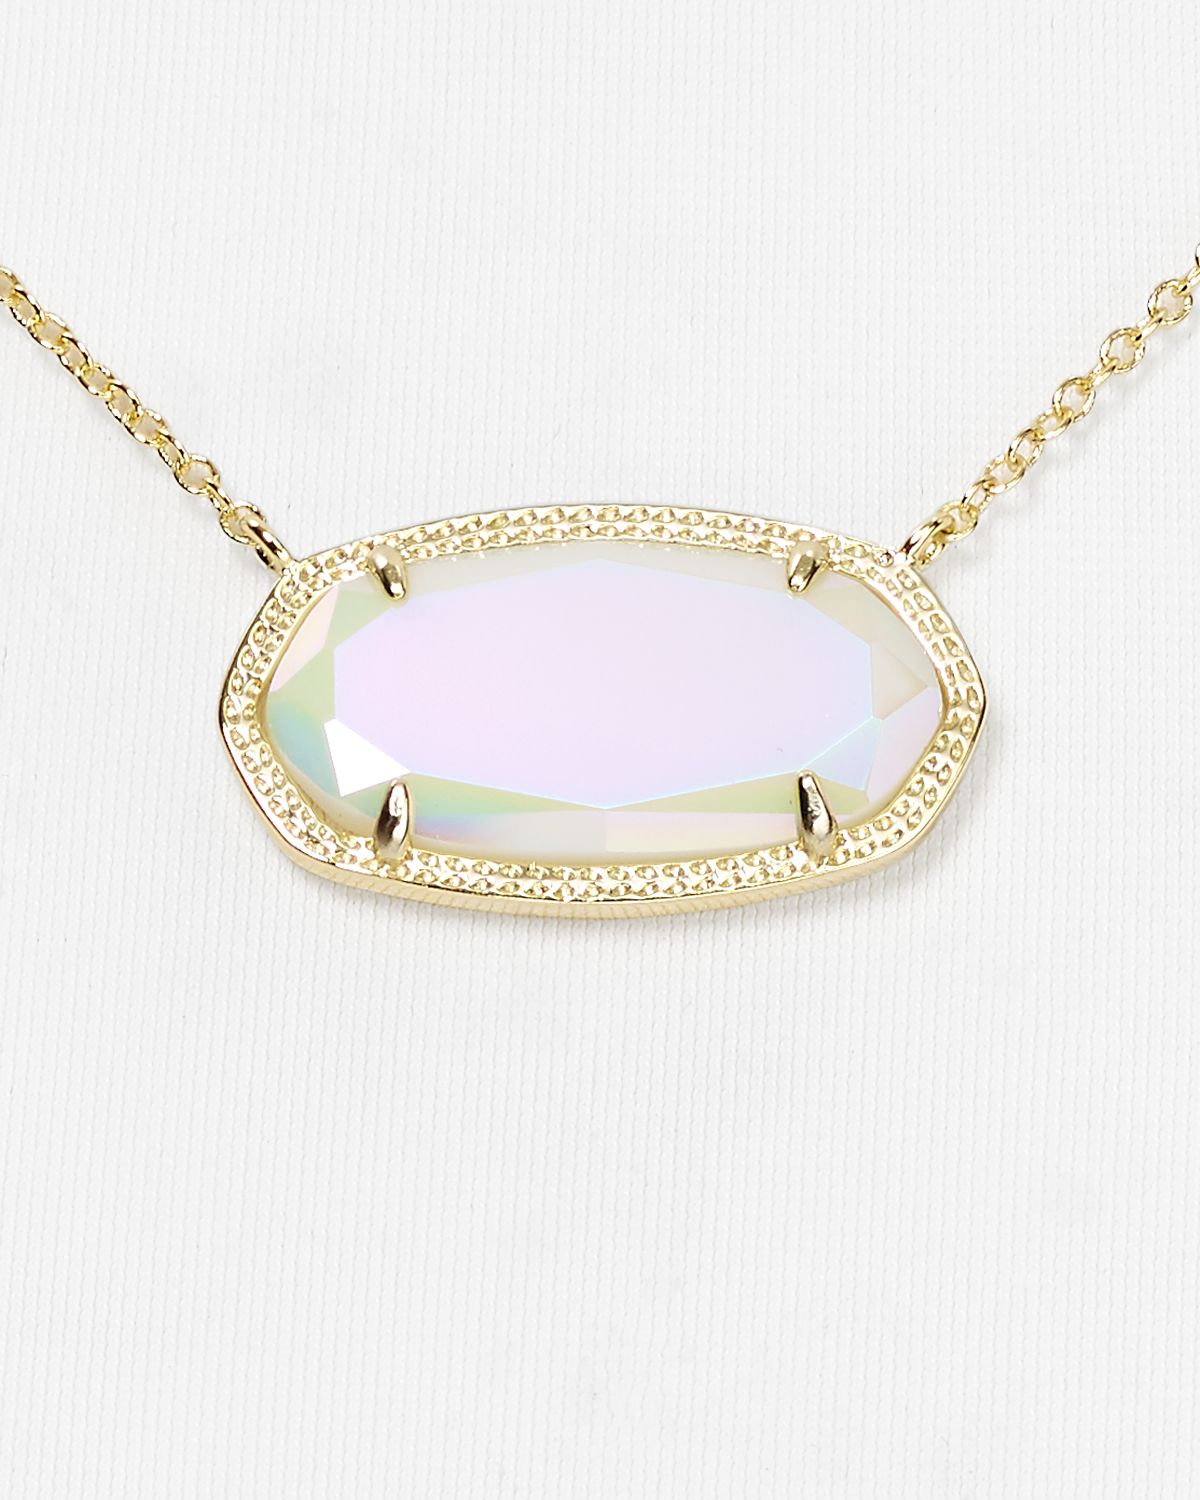 Lyst Kendra Scott Dylan Necklace 16 in Pink